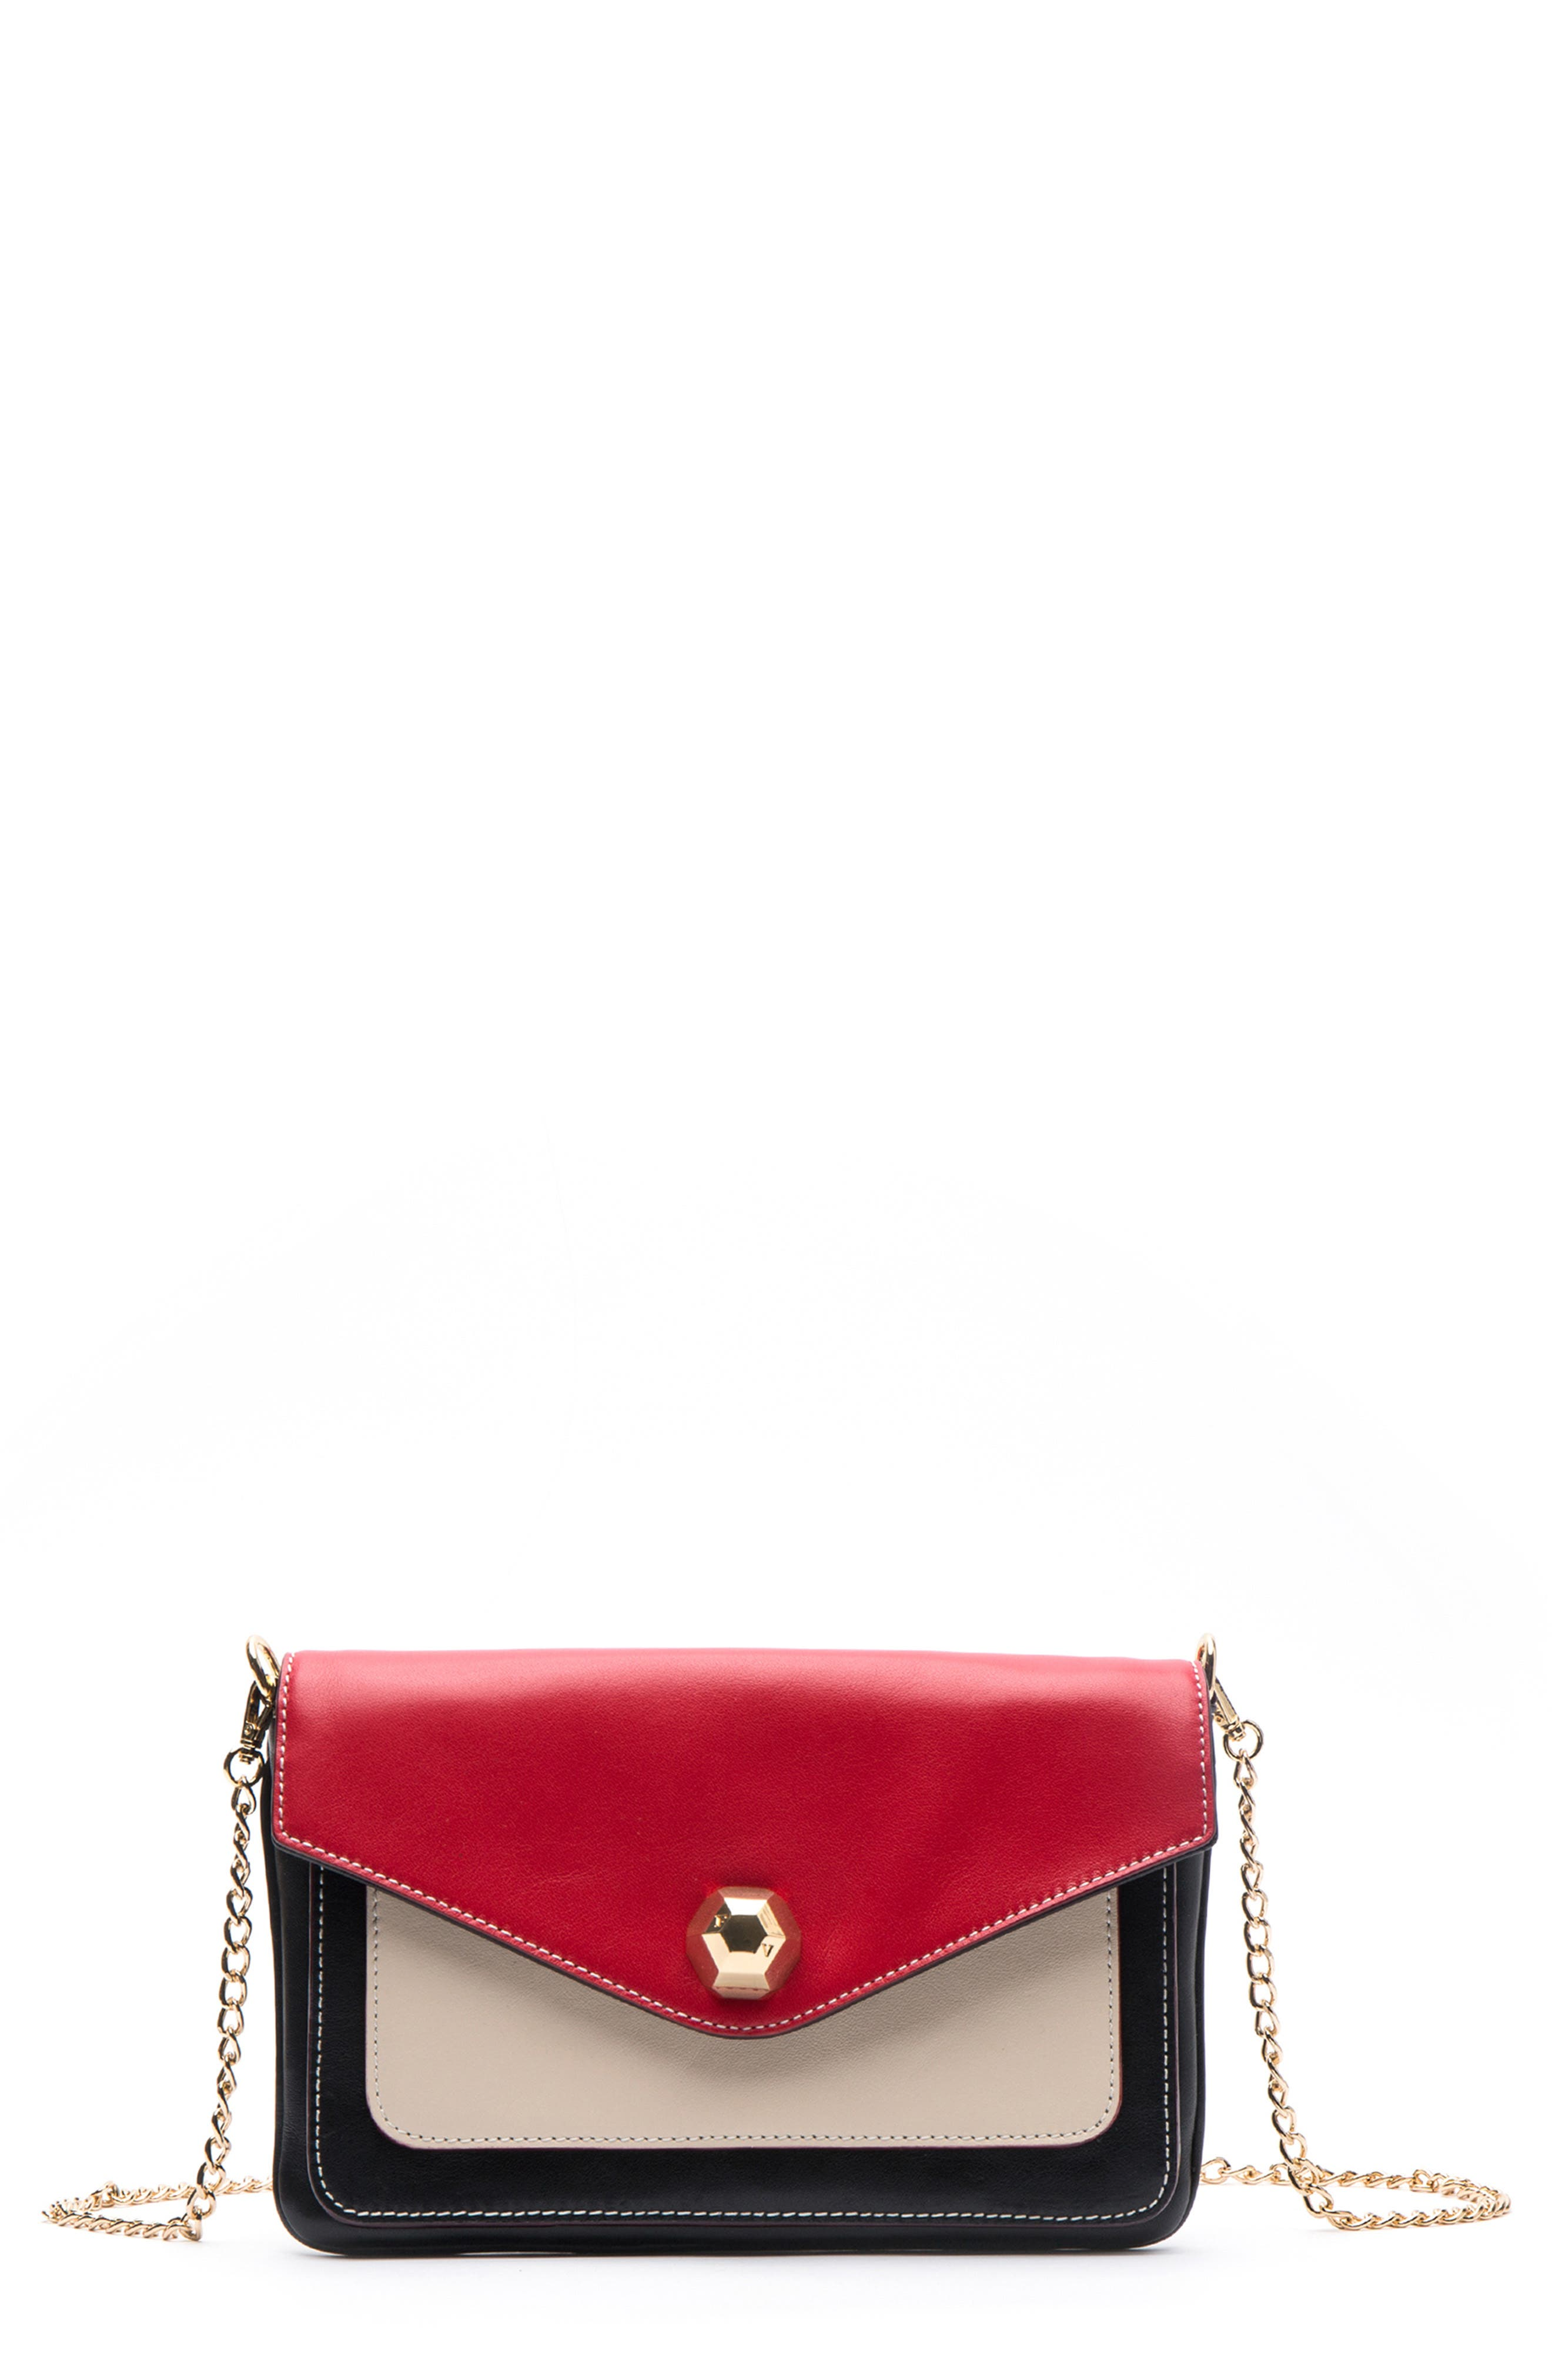 Tess Colorblock Leather Clutch,                             Main thumbnail 1, color,                             BLACK/ OYSTER/ RED